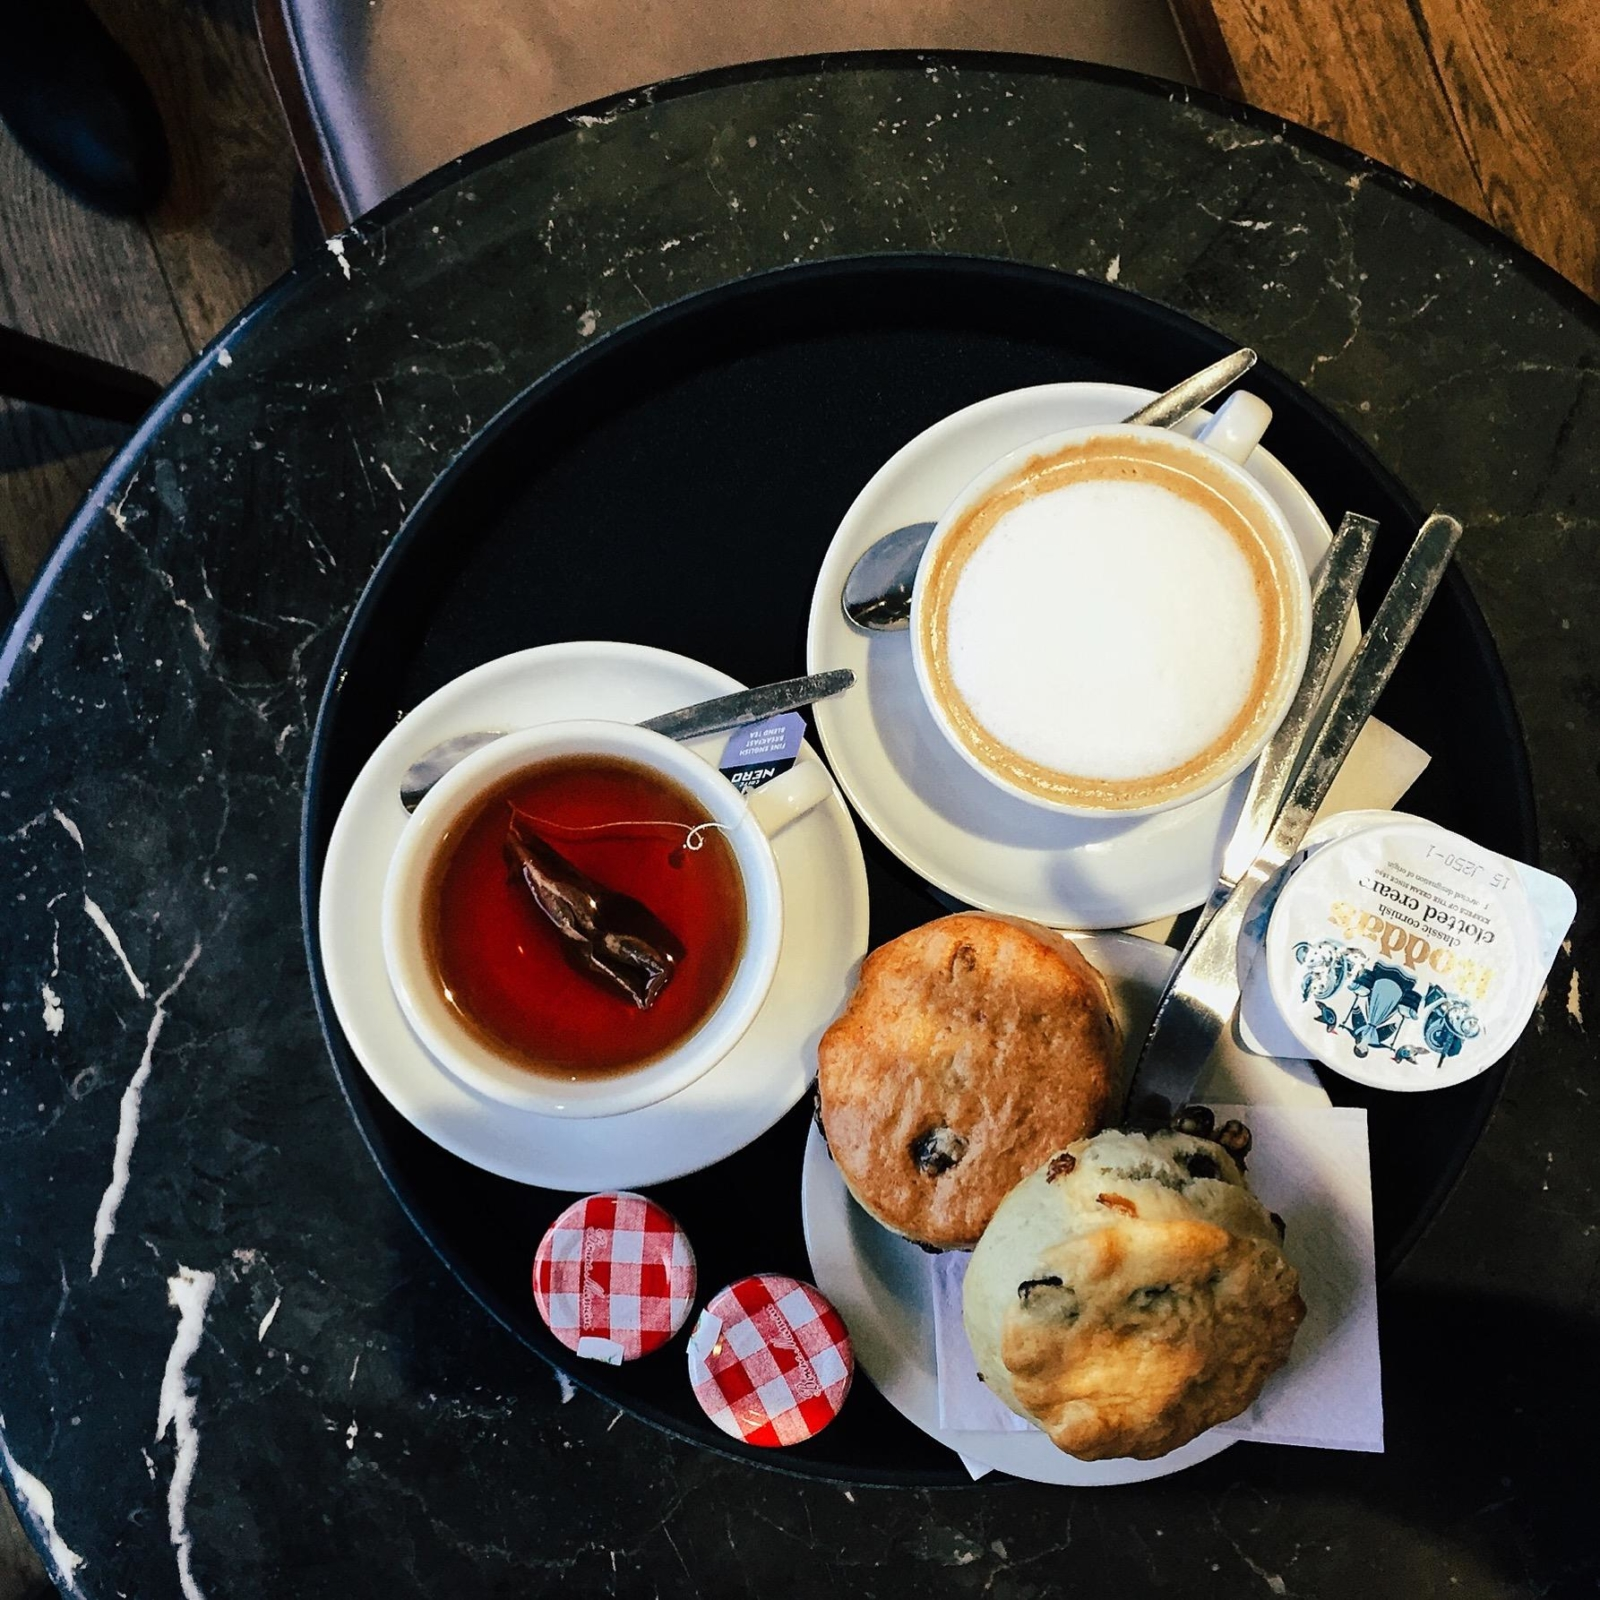 Tea with scones